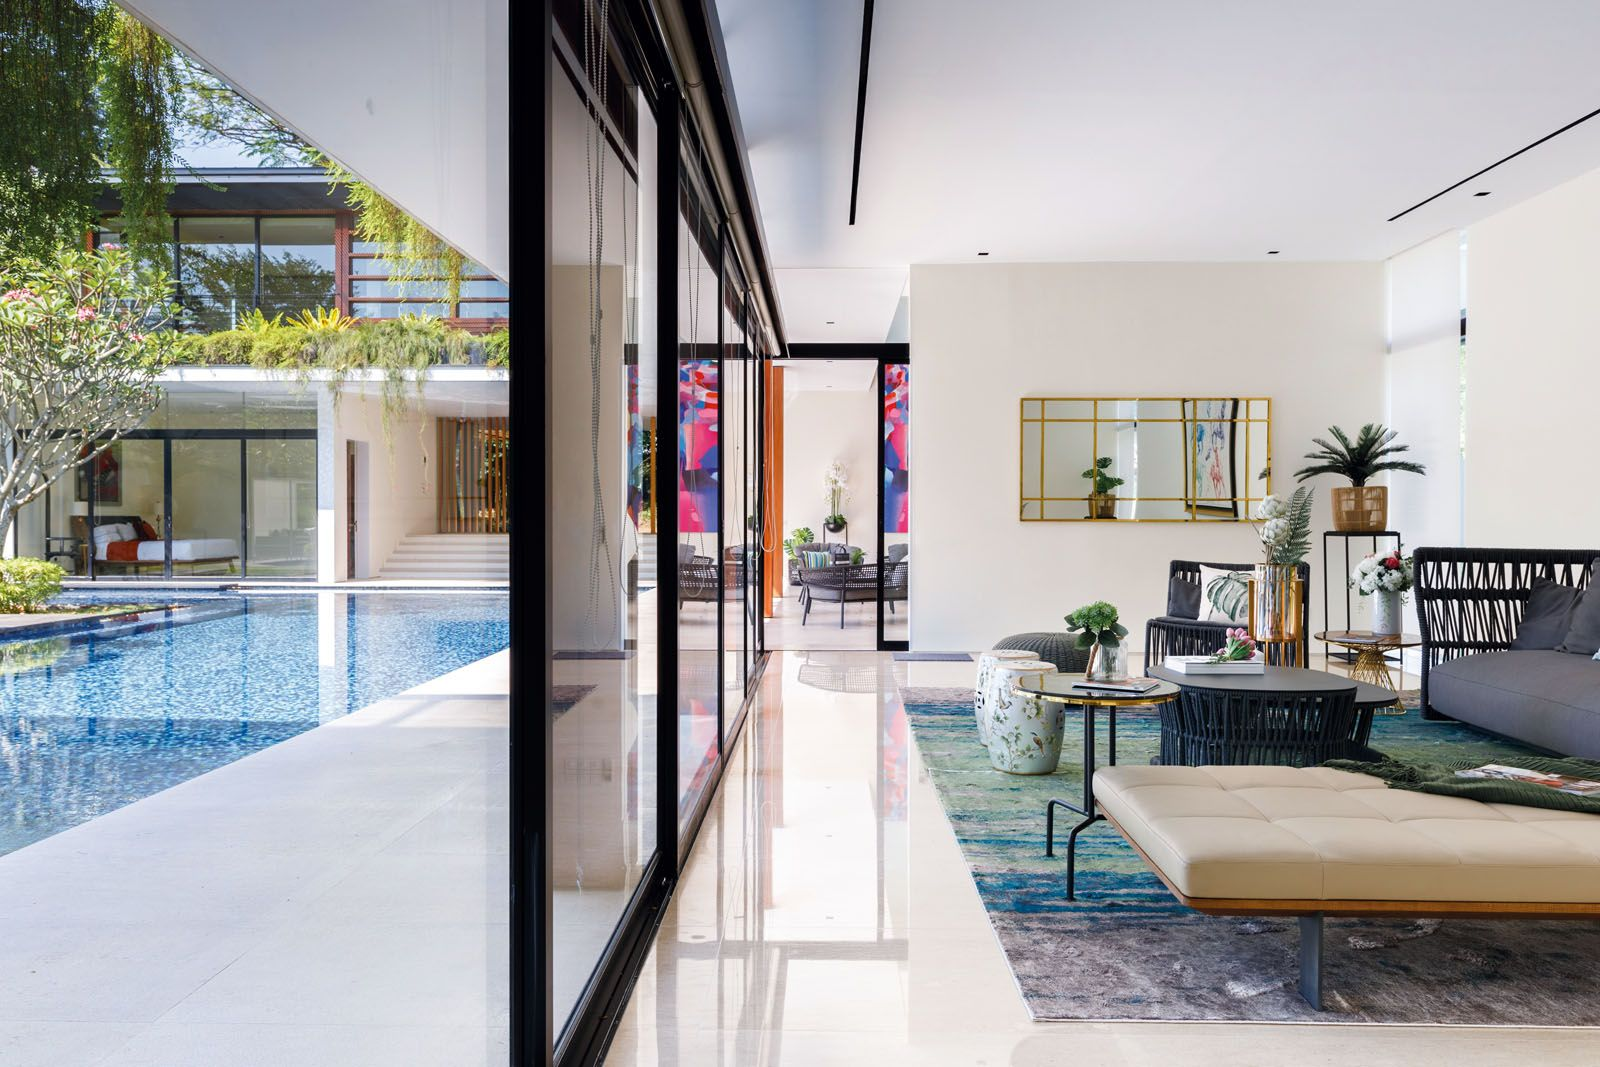 Strategically placed plants and the clever use of emerald tones in the living room draw the eye to the pool and the lush courtyard